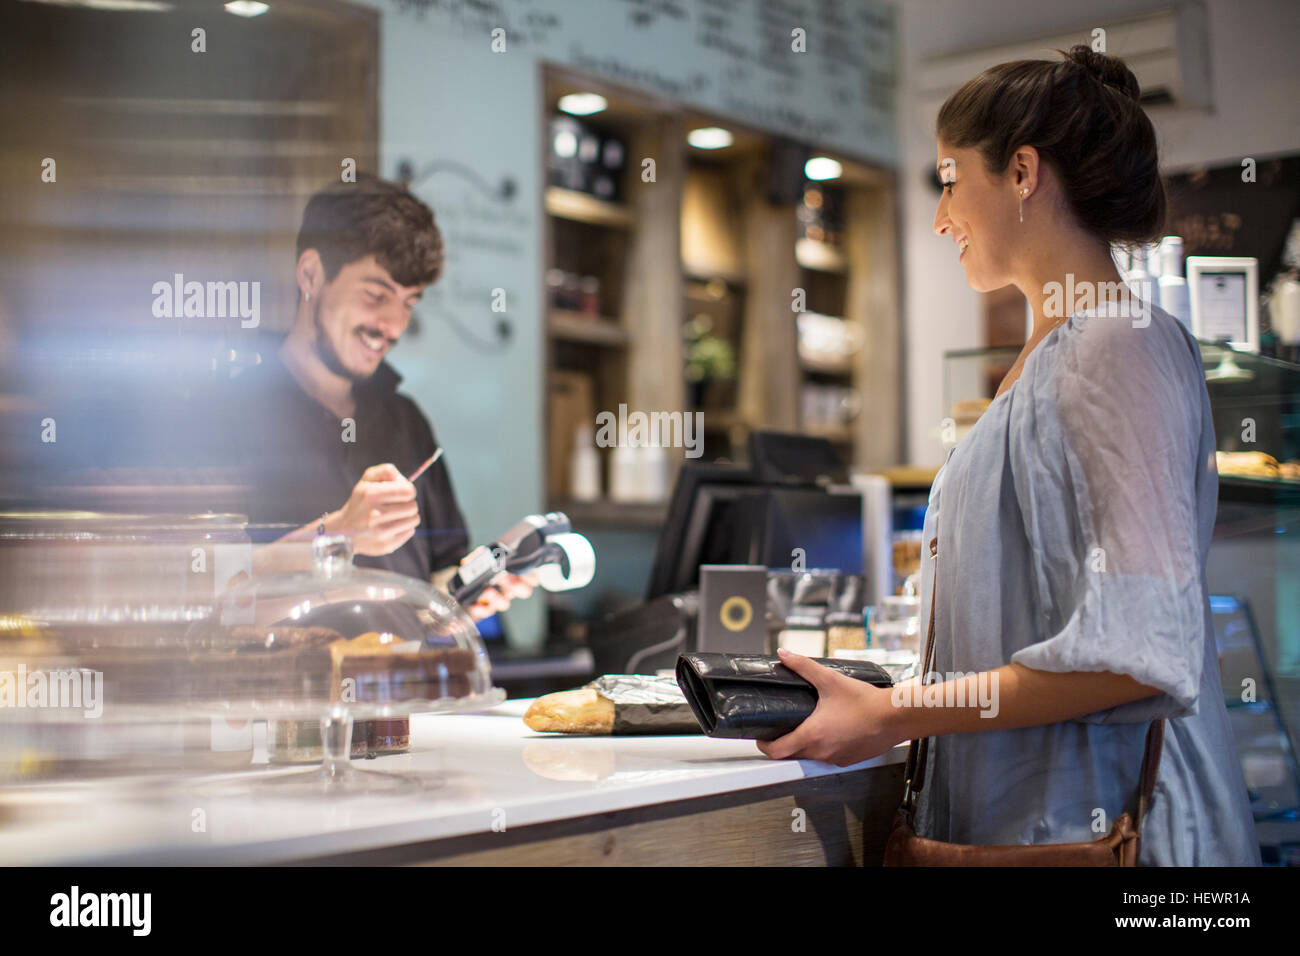 Barista calculating bill for female customer at cafe counter - Stock Image